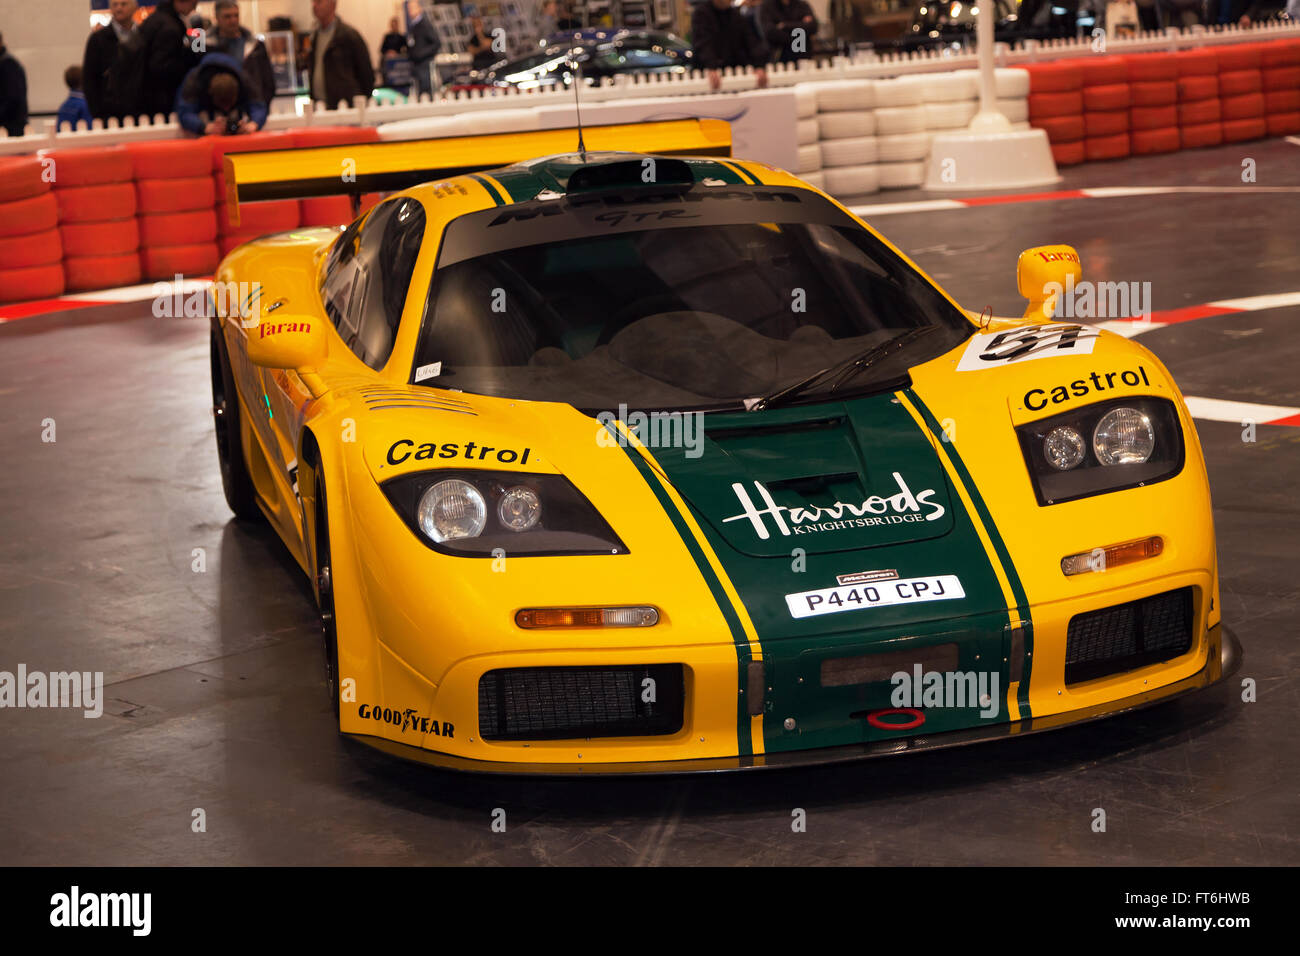 https://c8.alamy.com/comp/FT6HWB/a-1995-mclaren-f1-gtr-chassis-6-built-for-march-one-racing-being-driven-FT6HWB.jpg